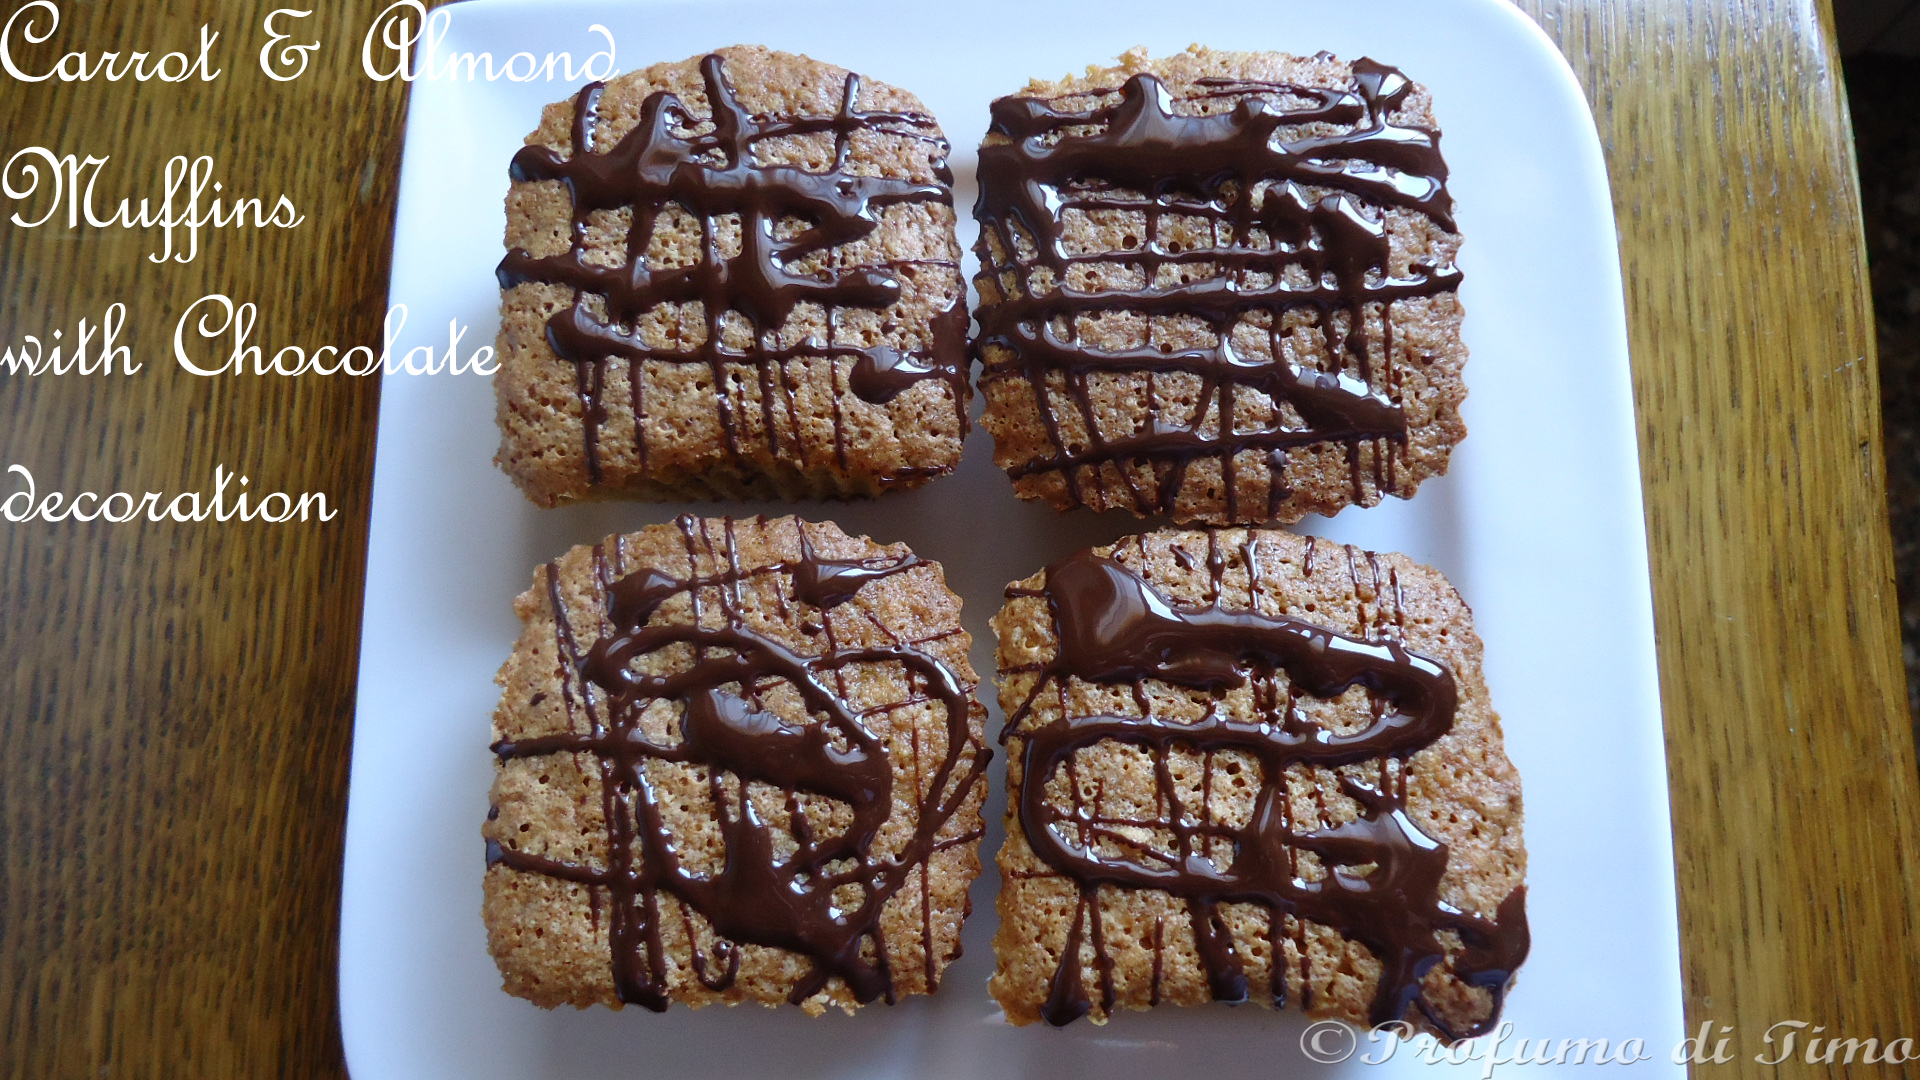 Carrot & Almond Muffins with Chocolate Decoration